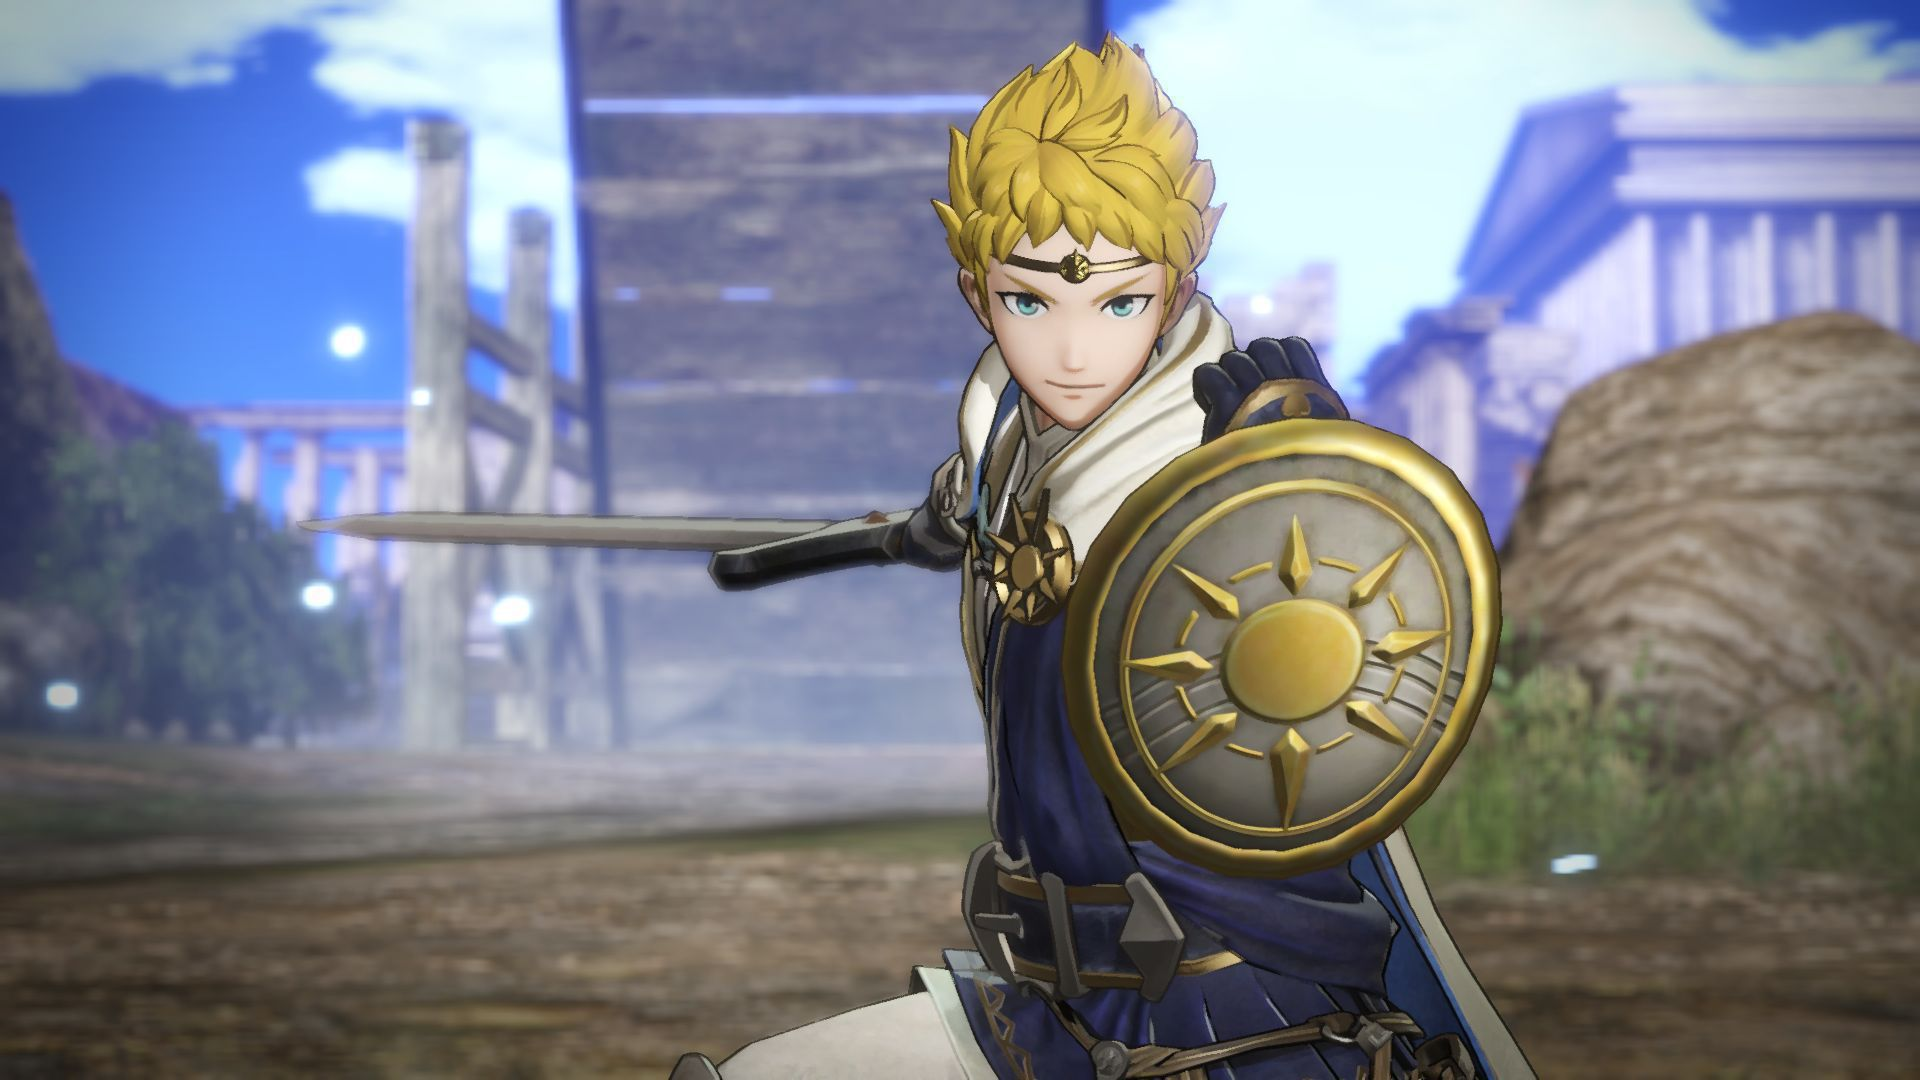 Fire Emblem Warriors High Quality Wallpapers